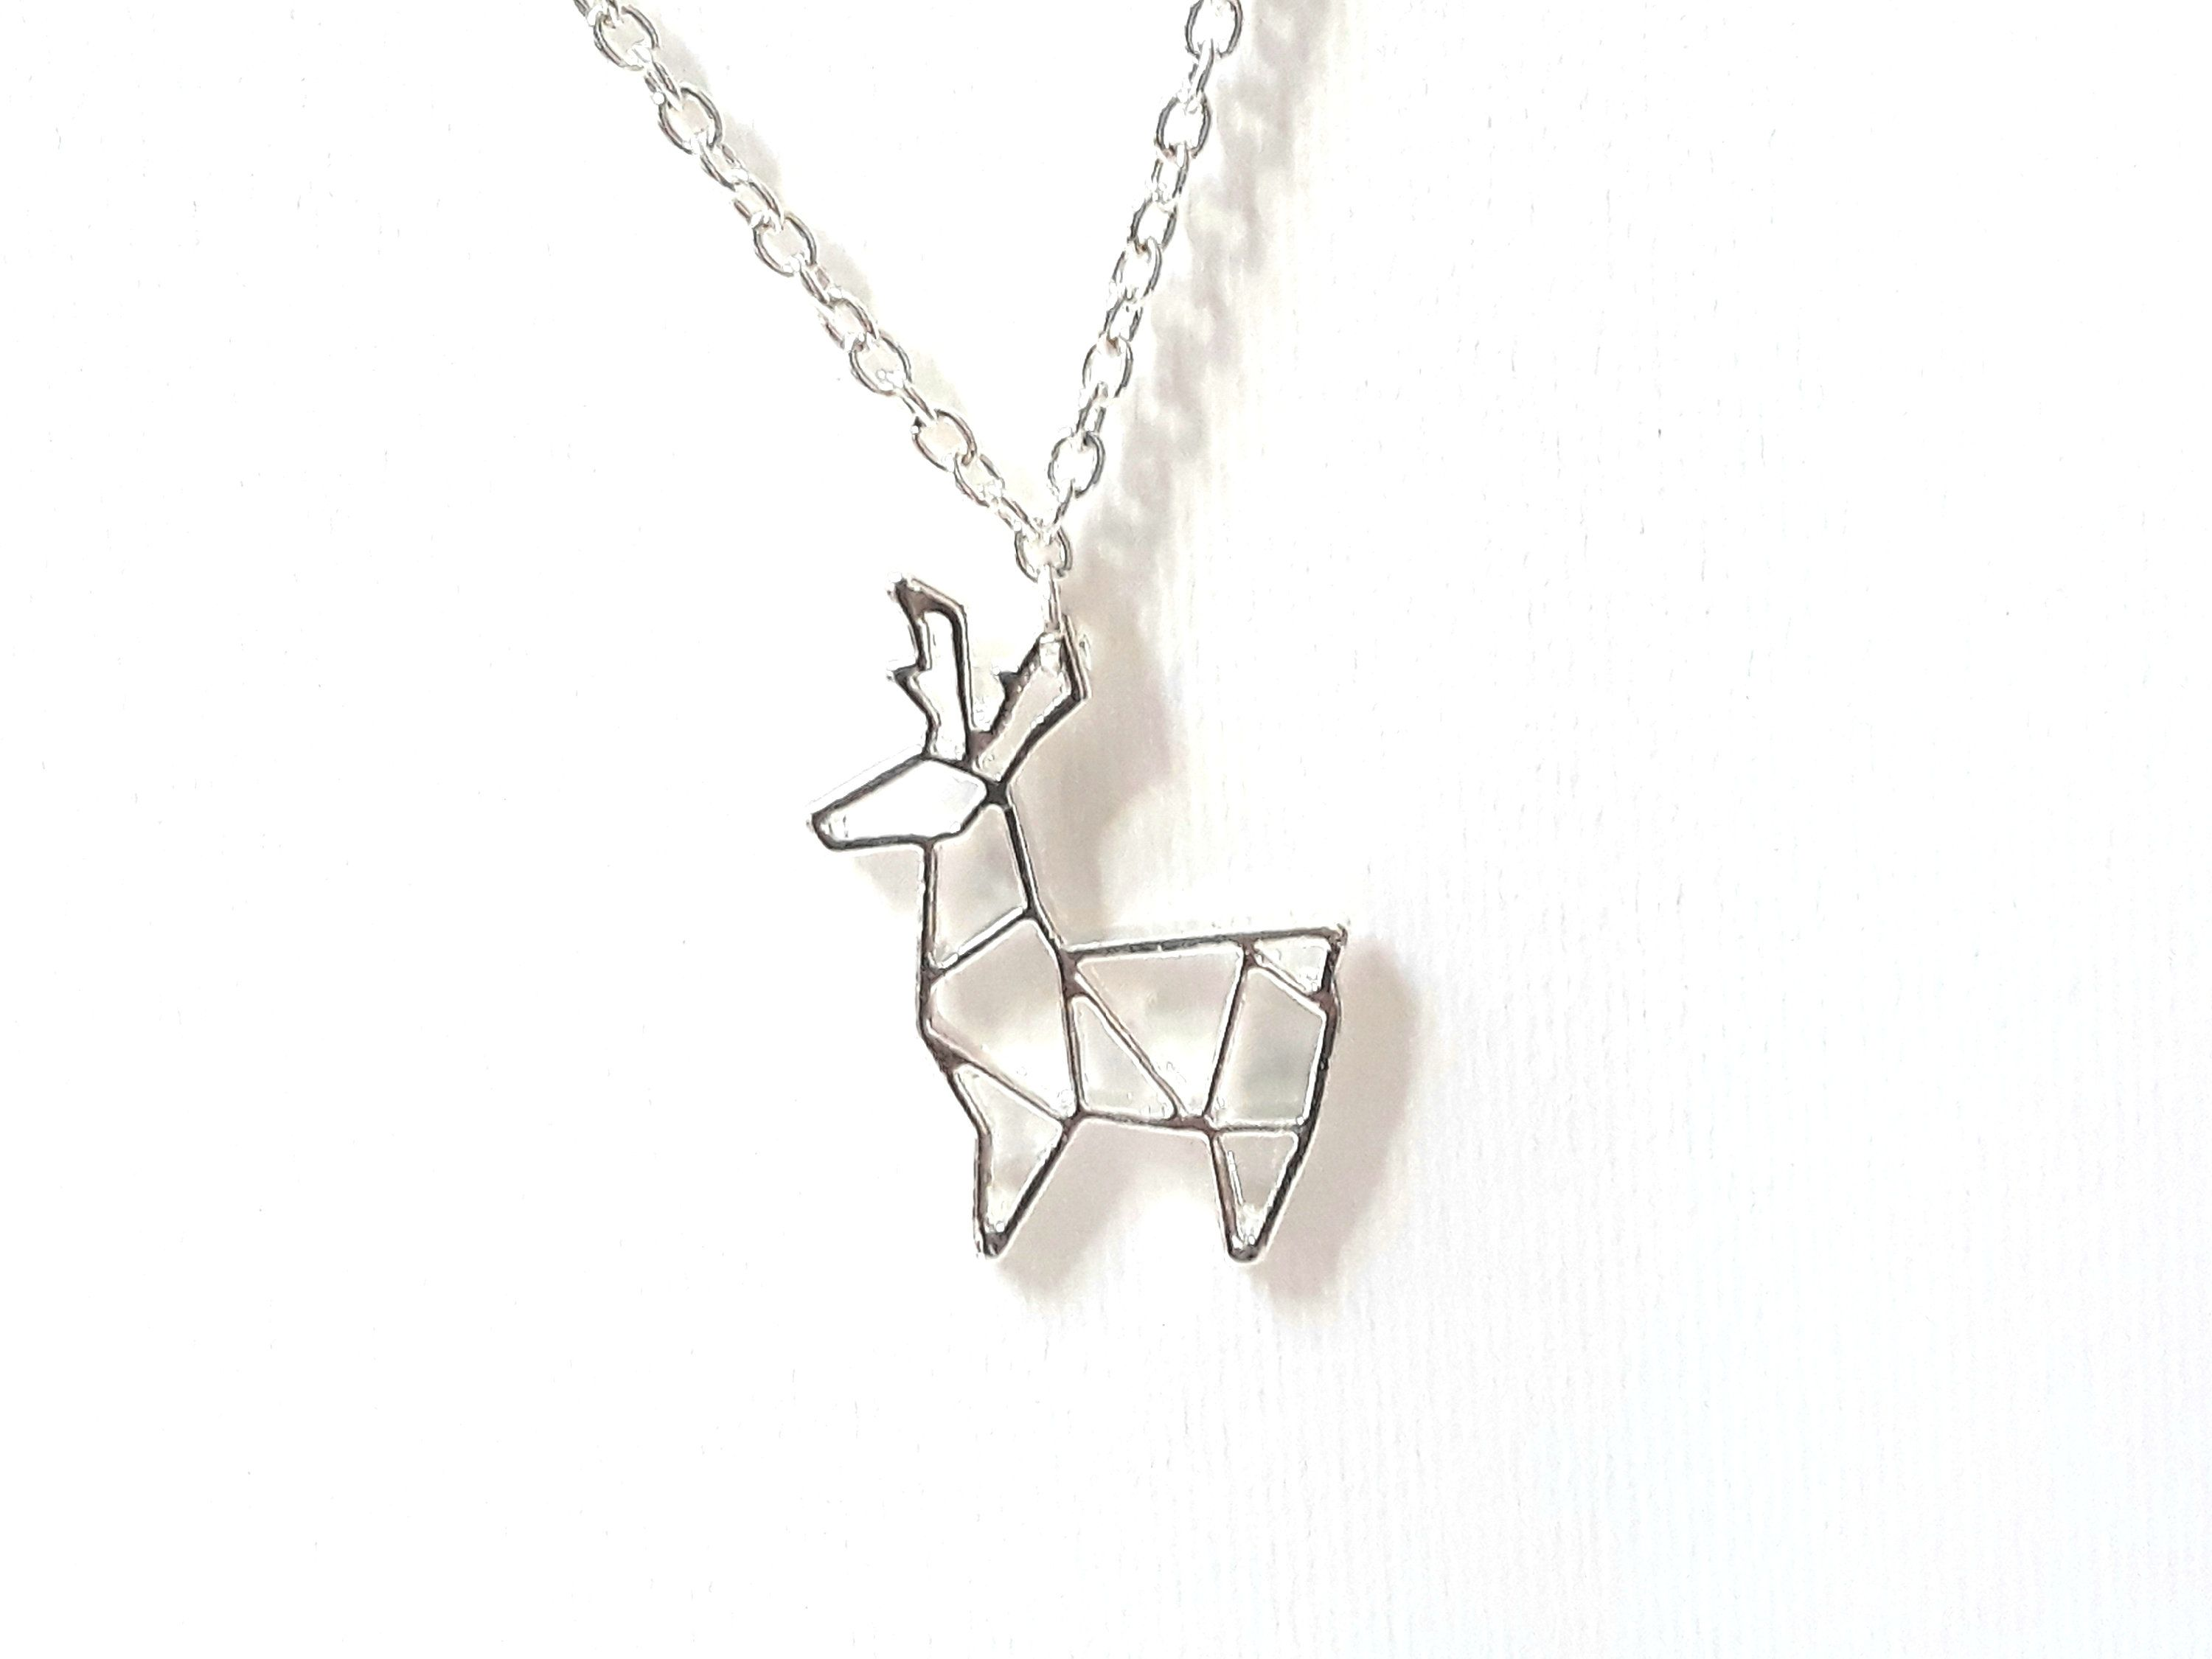 origami deer new jewelry pendant necklace online sterling a shop kind on chain one of silver printed